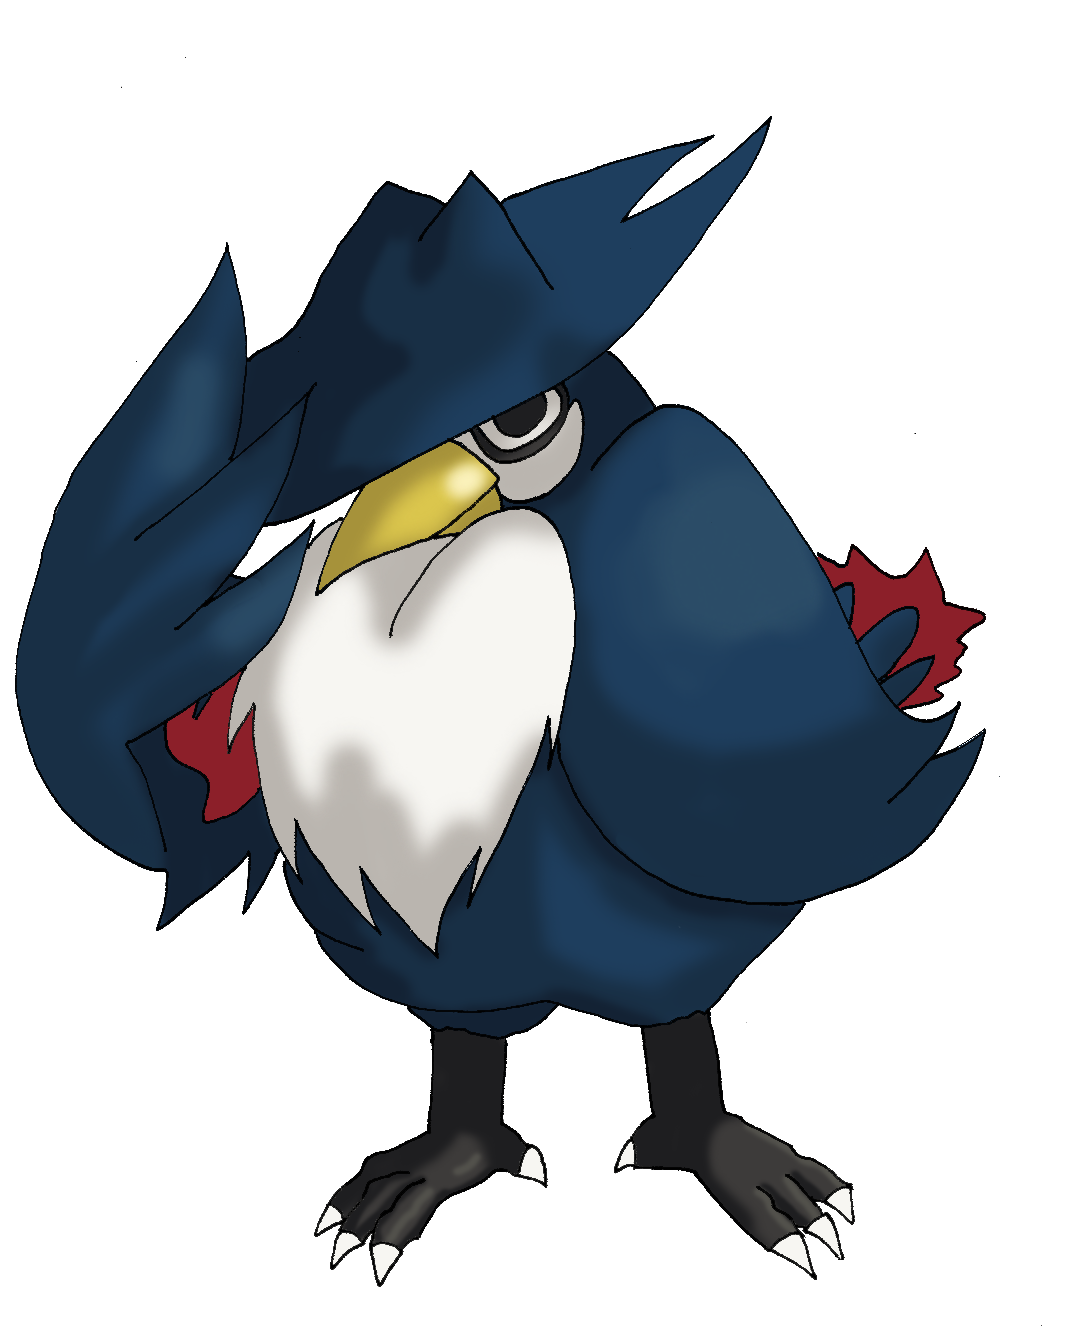 Pokeclan Honchkrow